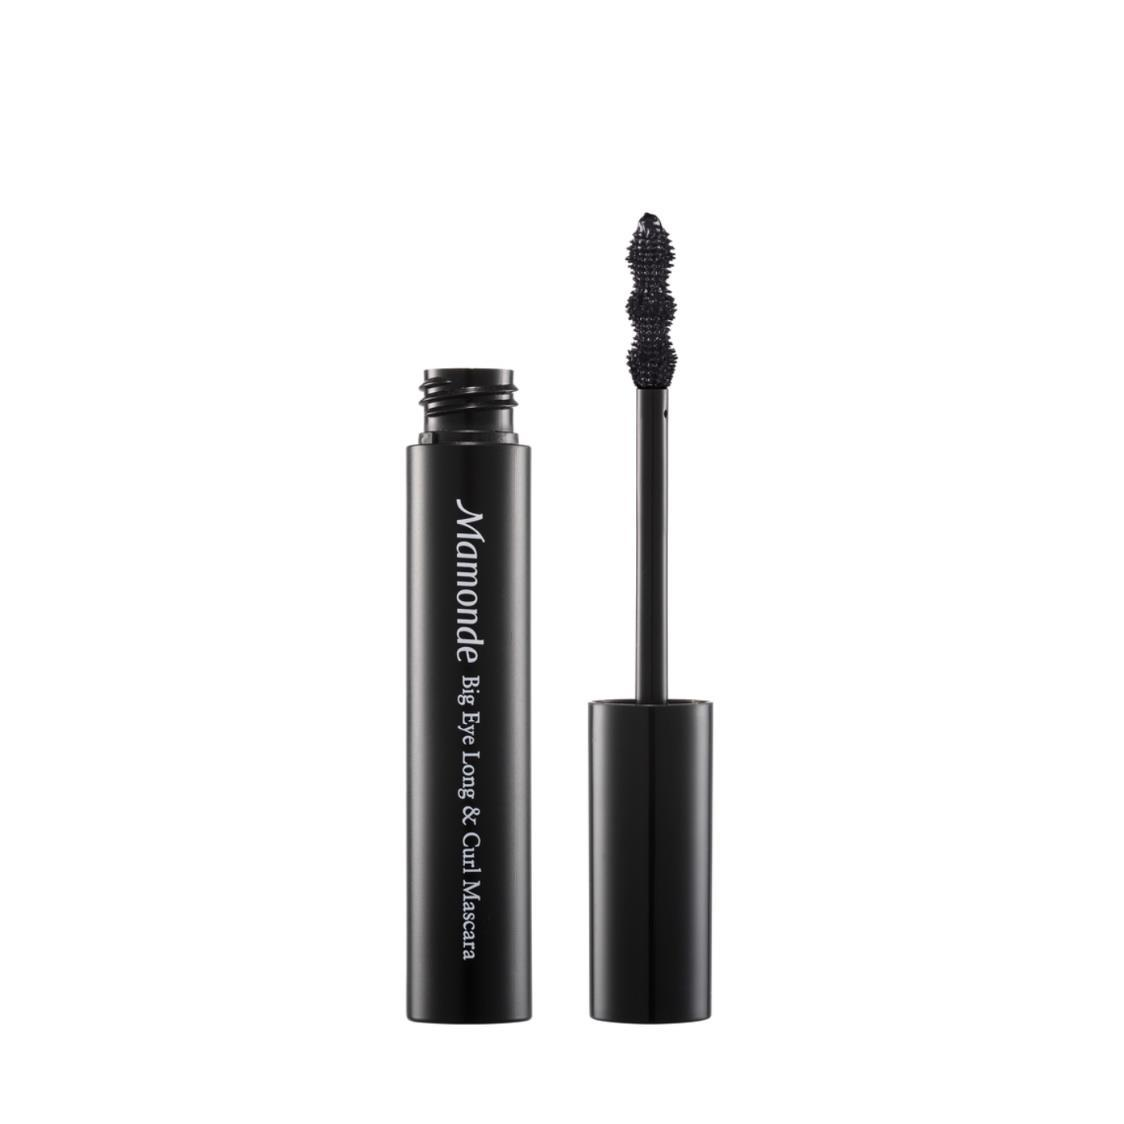 Big Eye LongCurl Mascara